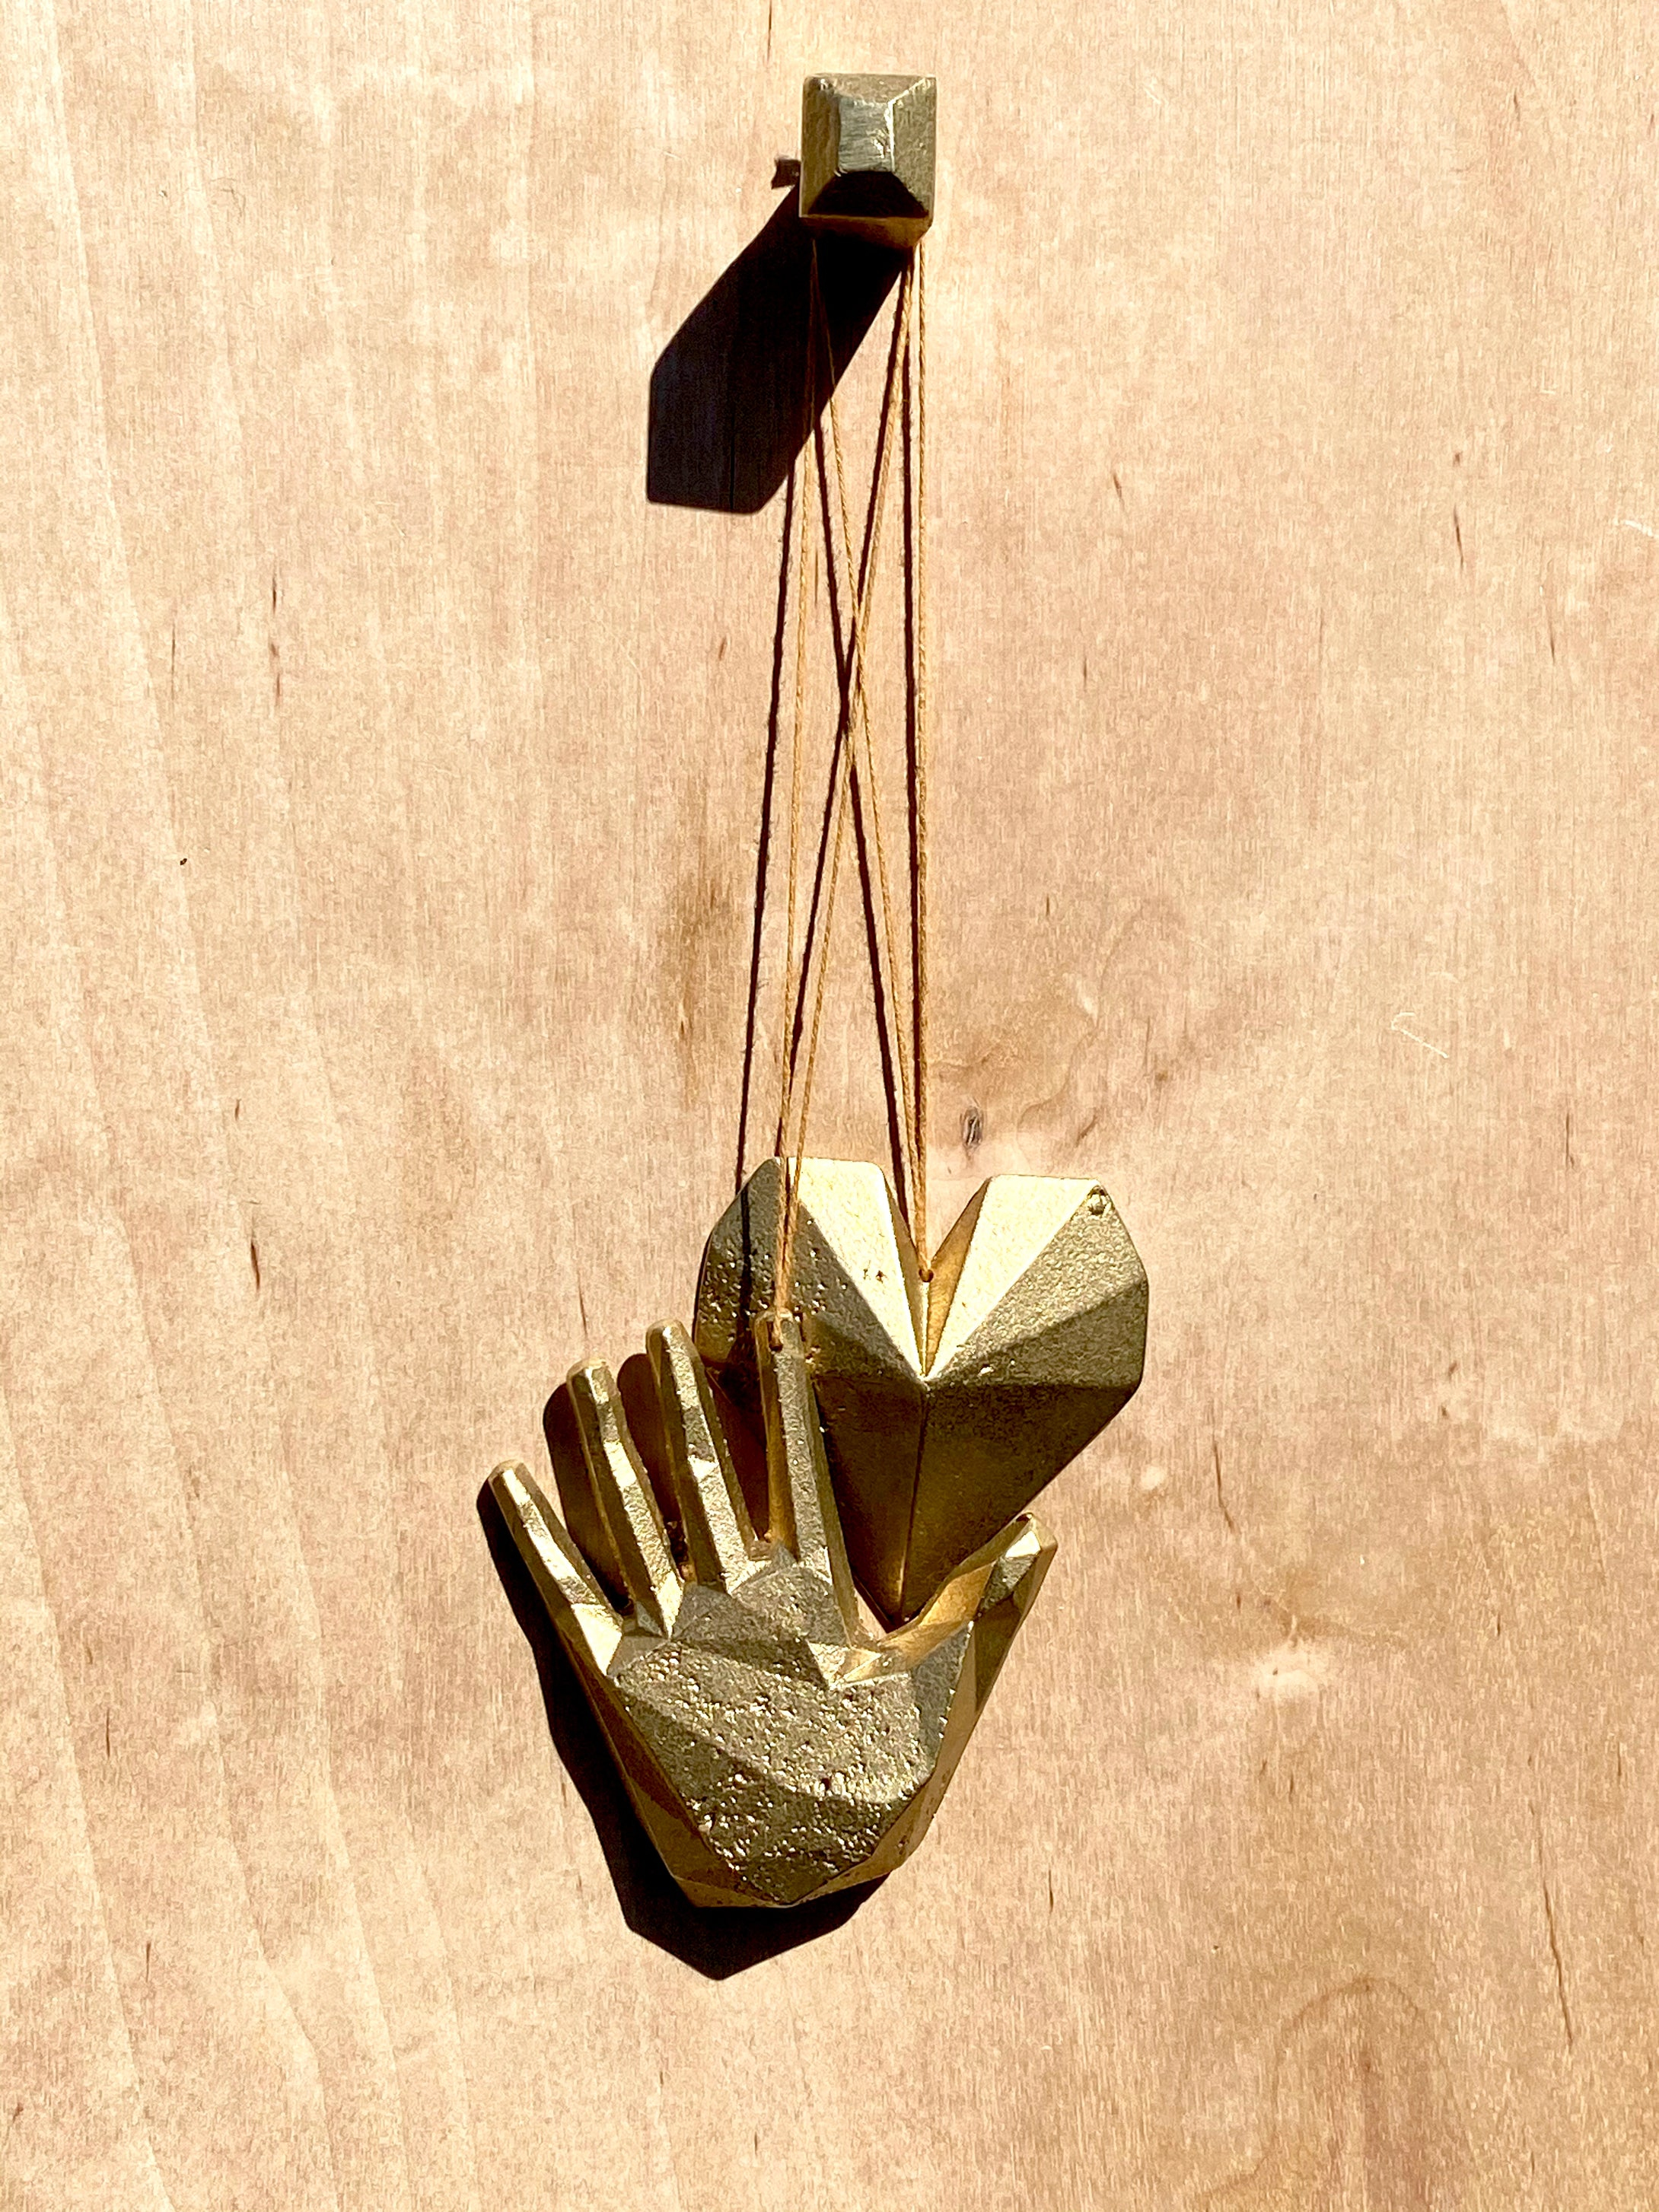 'LOVE' set. Cast bronze knob, hand and heart trio.